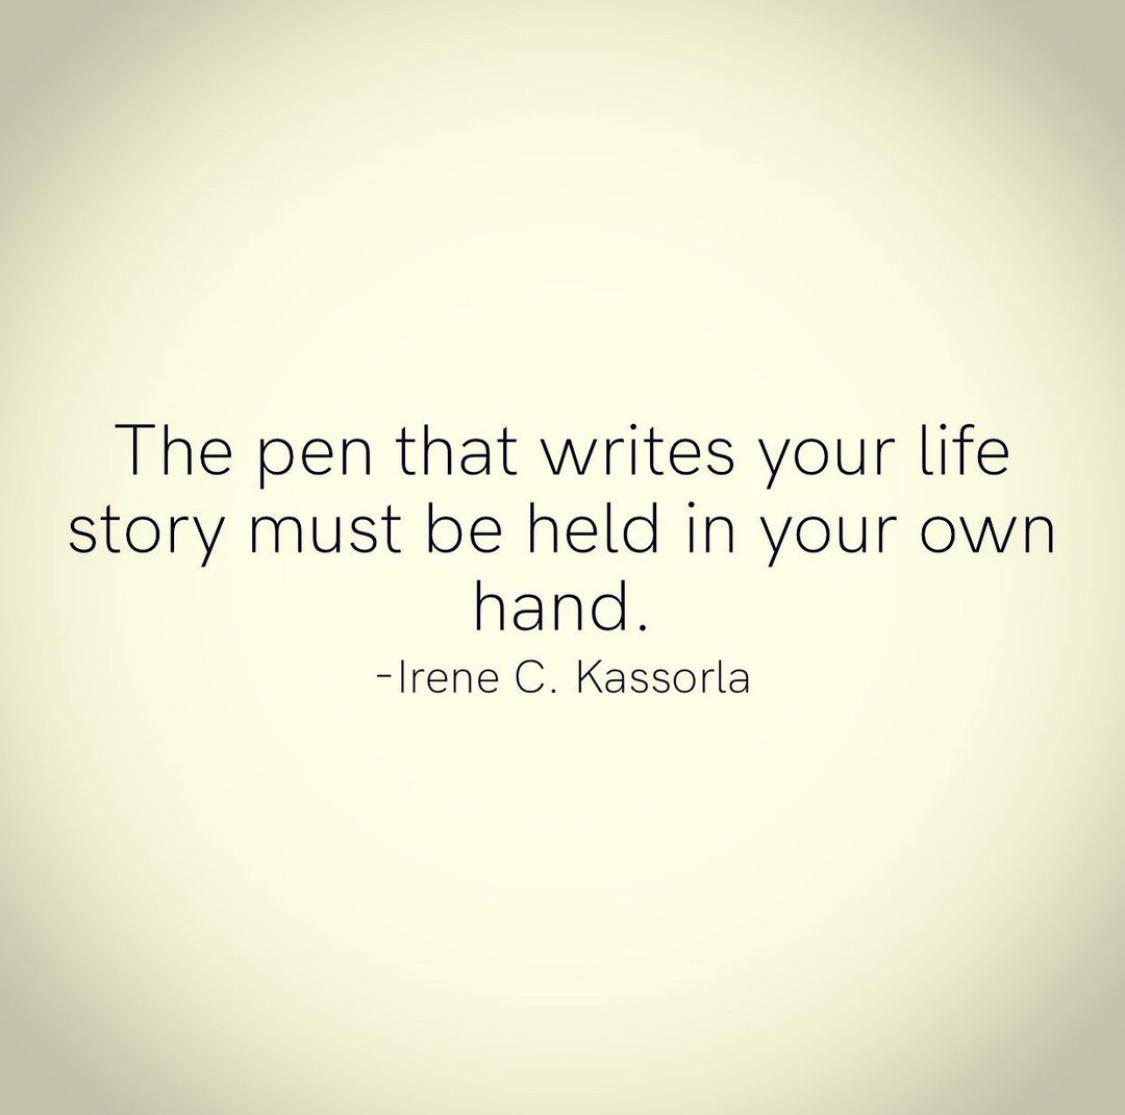 [Image] The pen that writes your life story must be held in your own hand. – Irene C. Kassorla